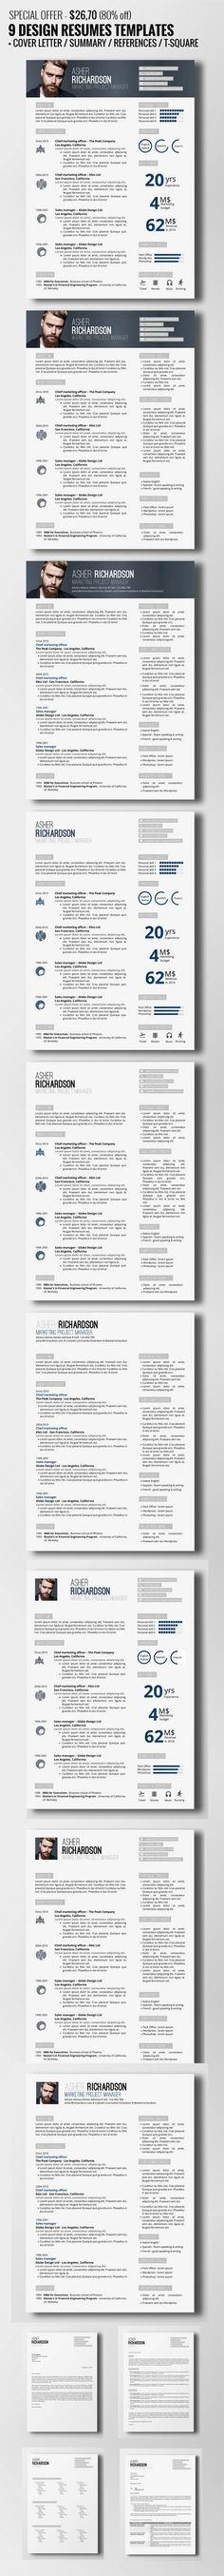 435 best Resume images on Pinterest Resume design, Design resume - example of college student resume